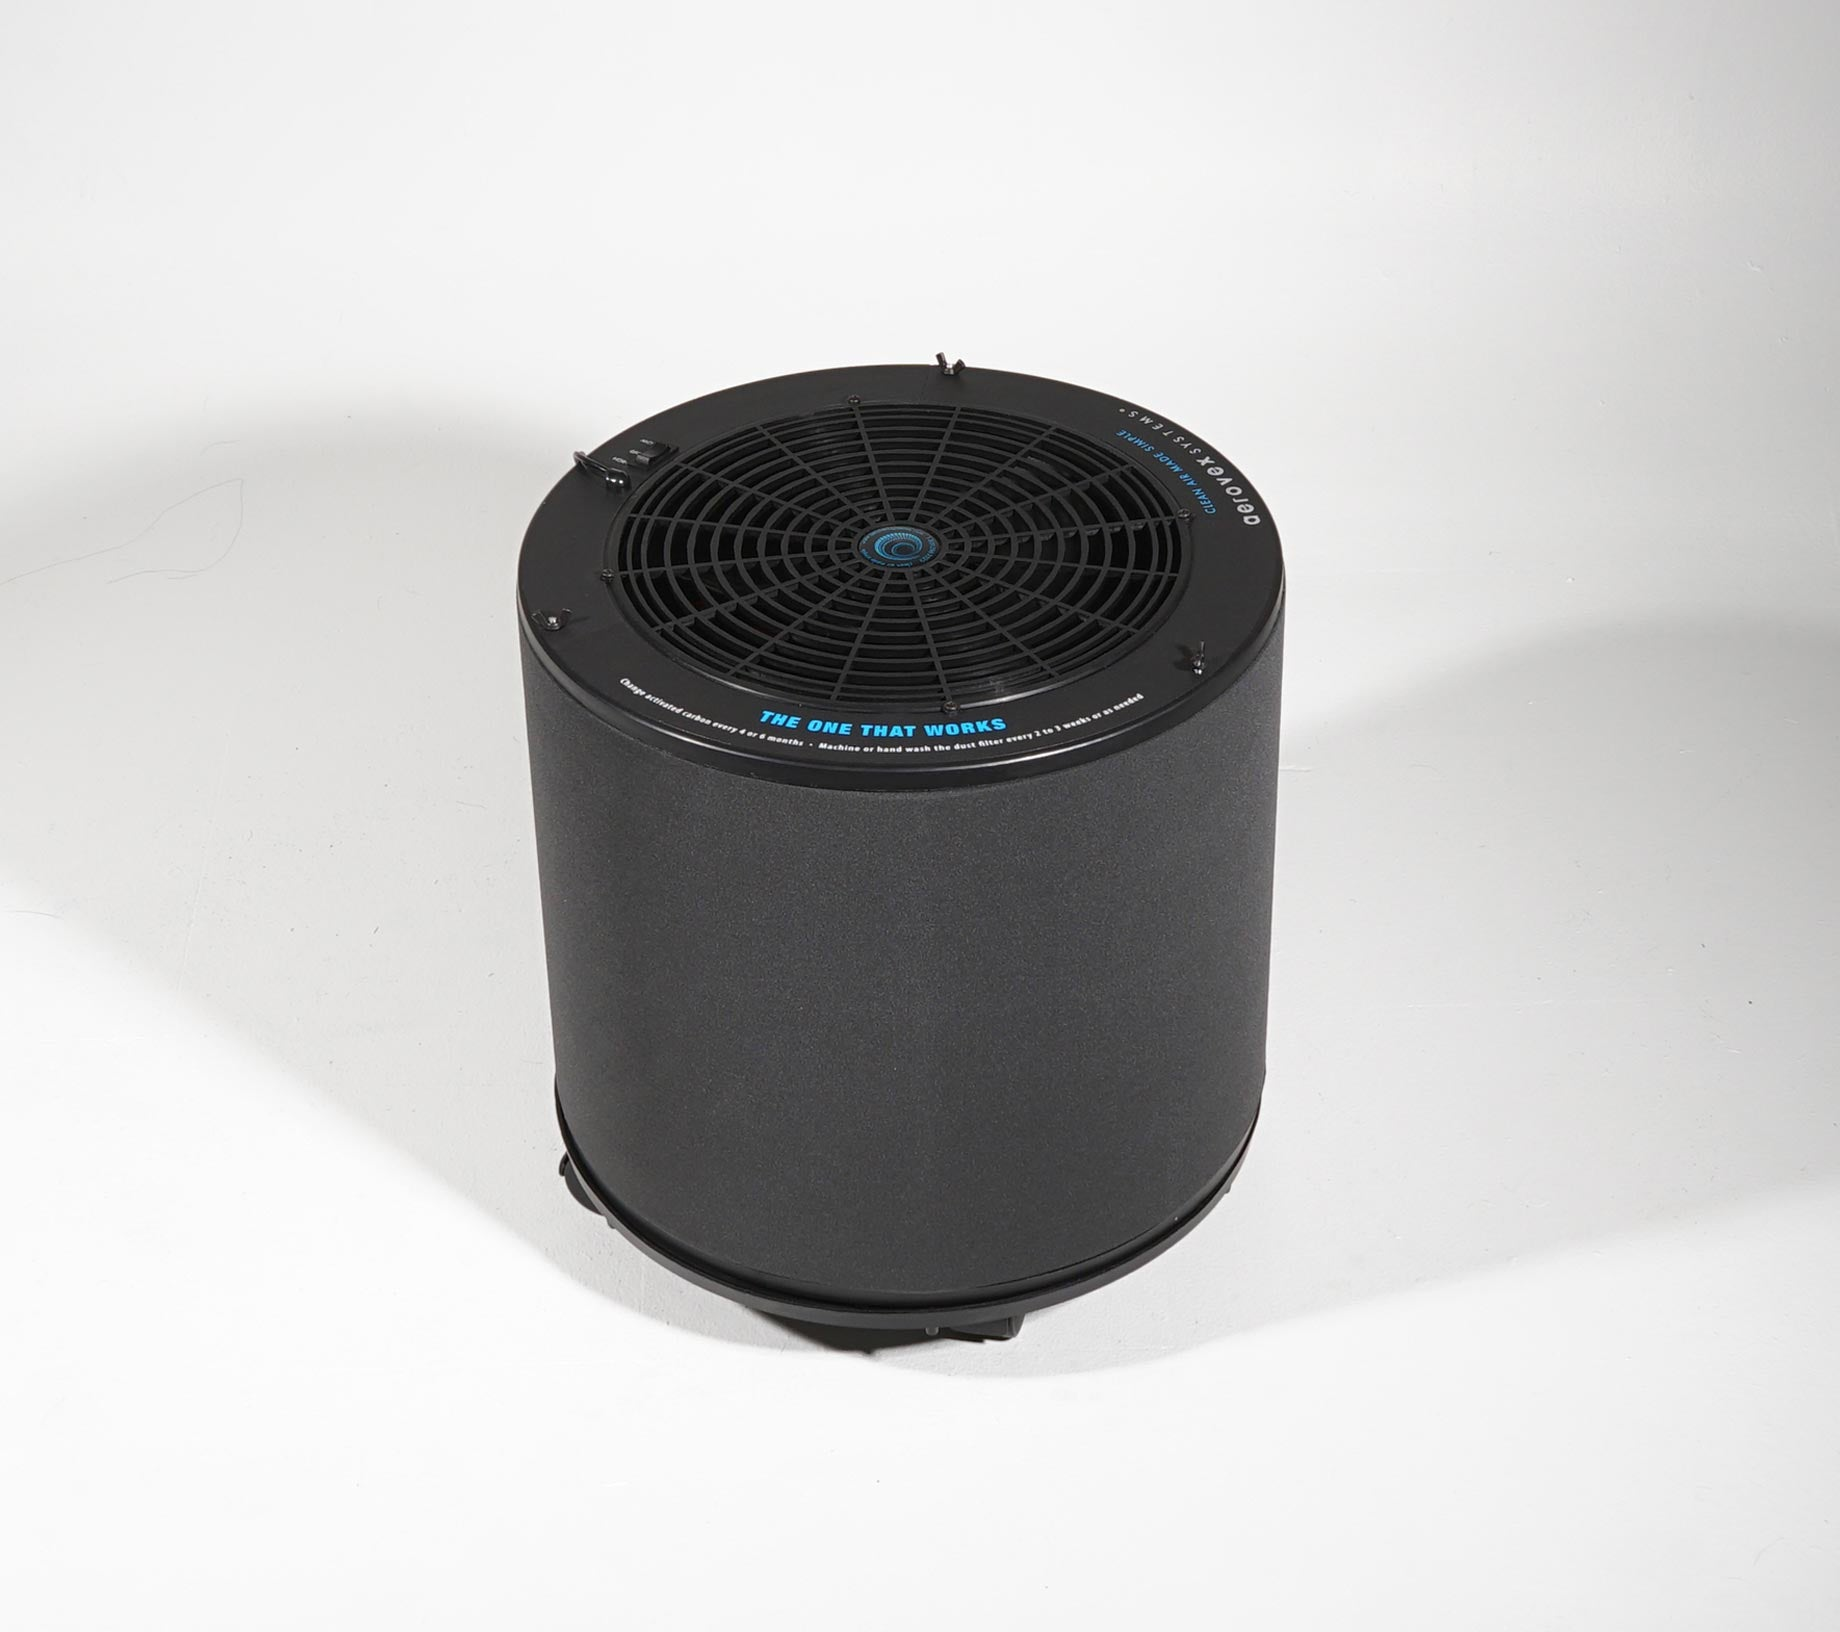 Aerovex - The One That Works™ Salon Room Air Purifier with PCO Technology